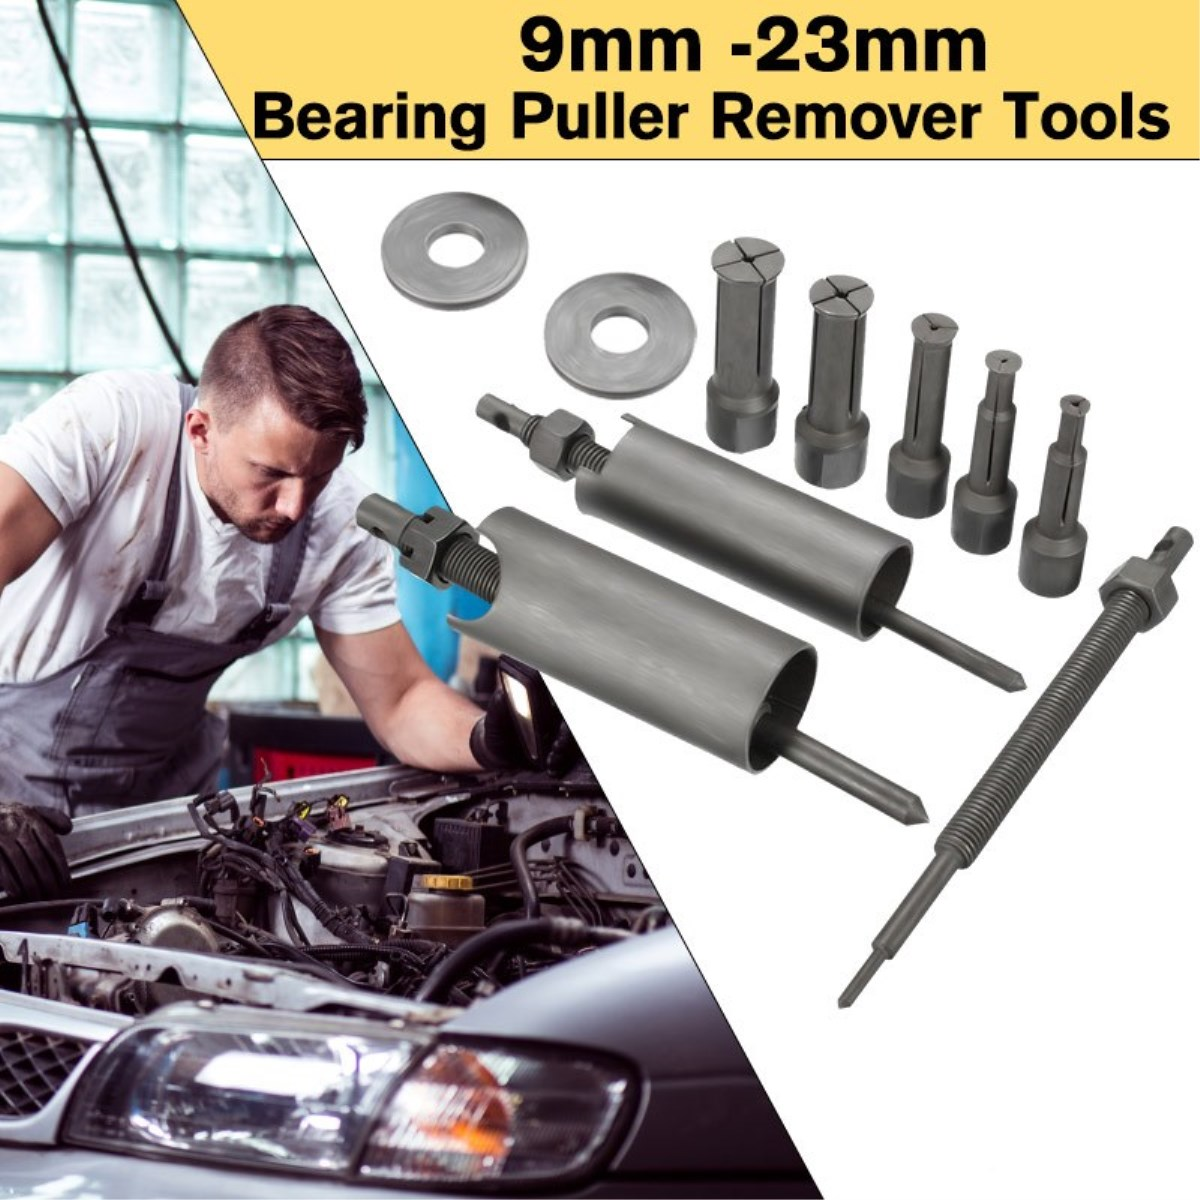 1-set-auto-car-motocycle-inner-bearing-puller-tool-remover-kit-from-9mm-to-23mm-diameter